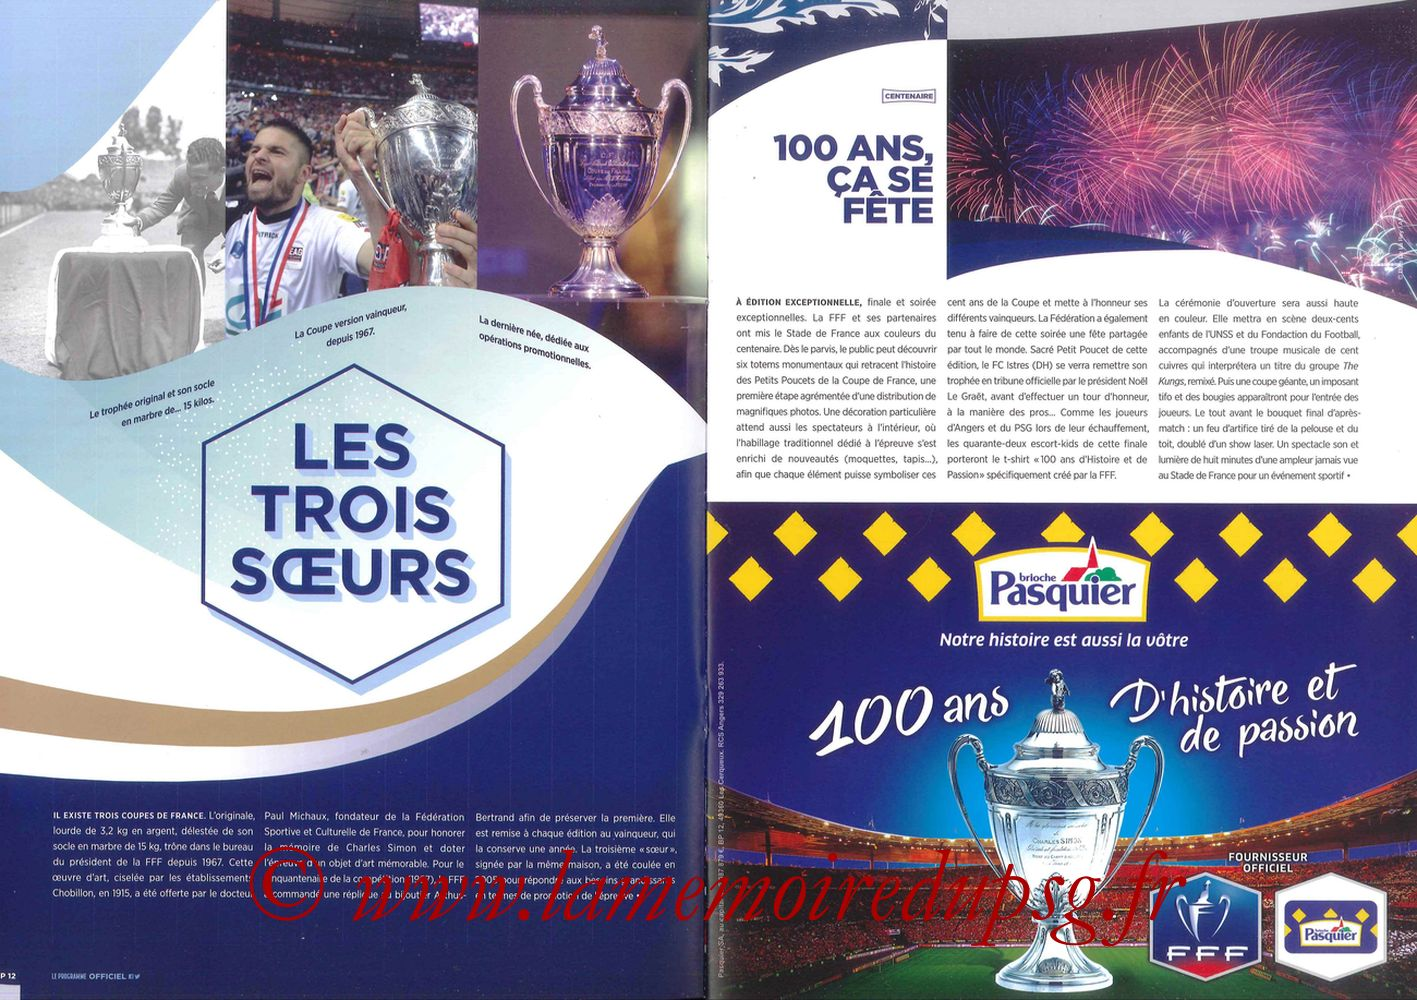 2017-05-27  Angers-PSG (Finale CF à Saint-Denis, Programme officiel) - Pages 12 et 13